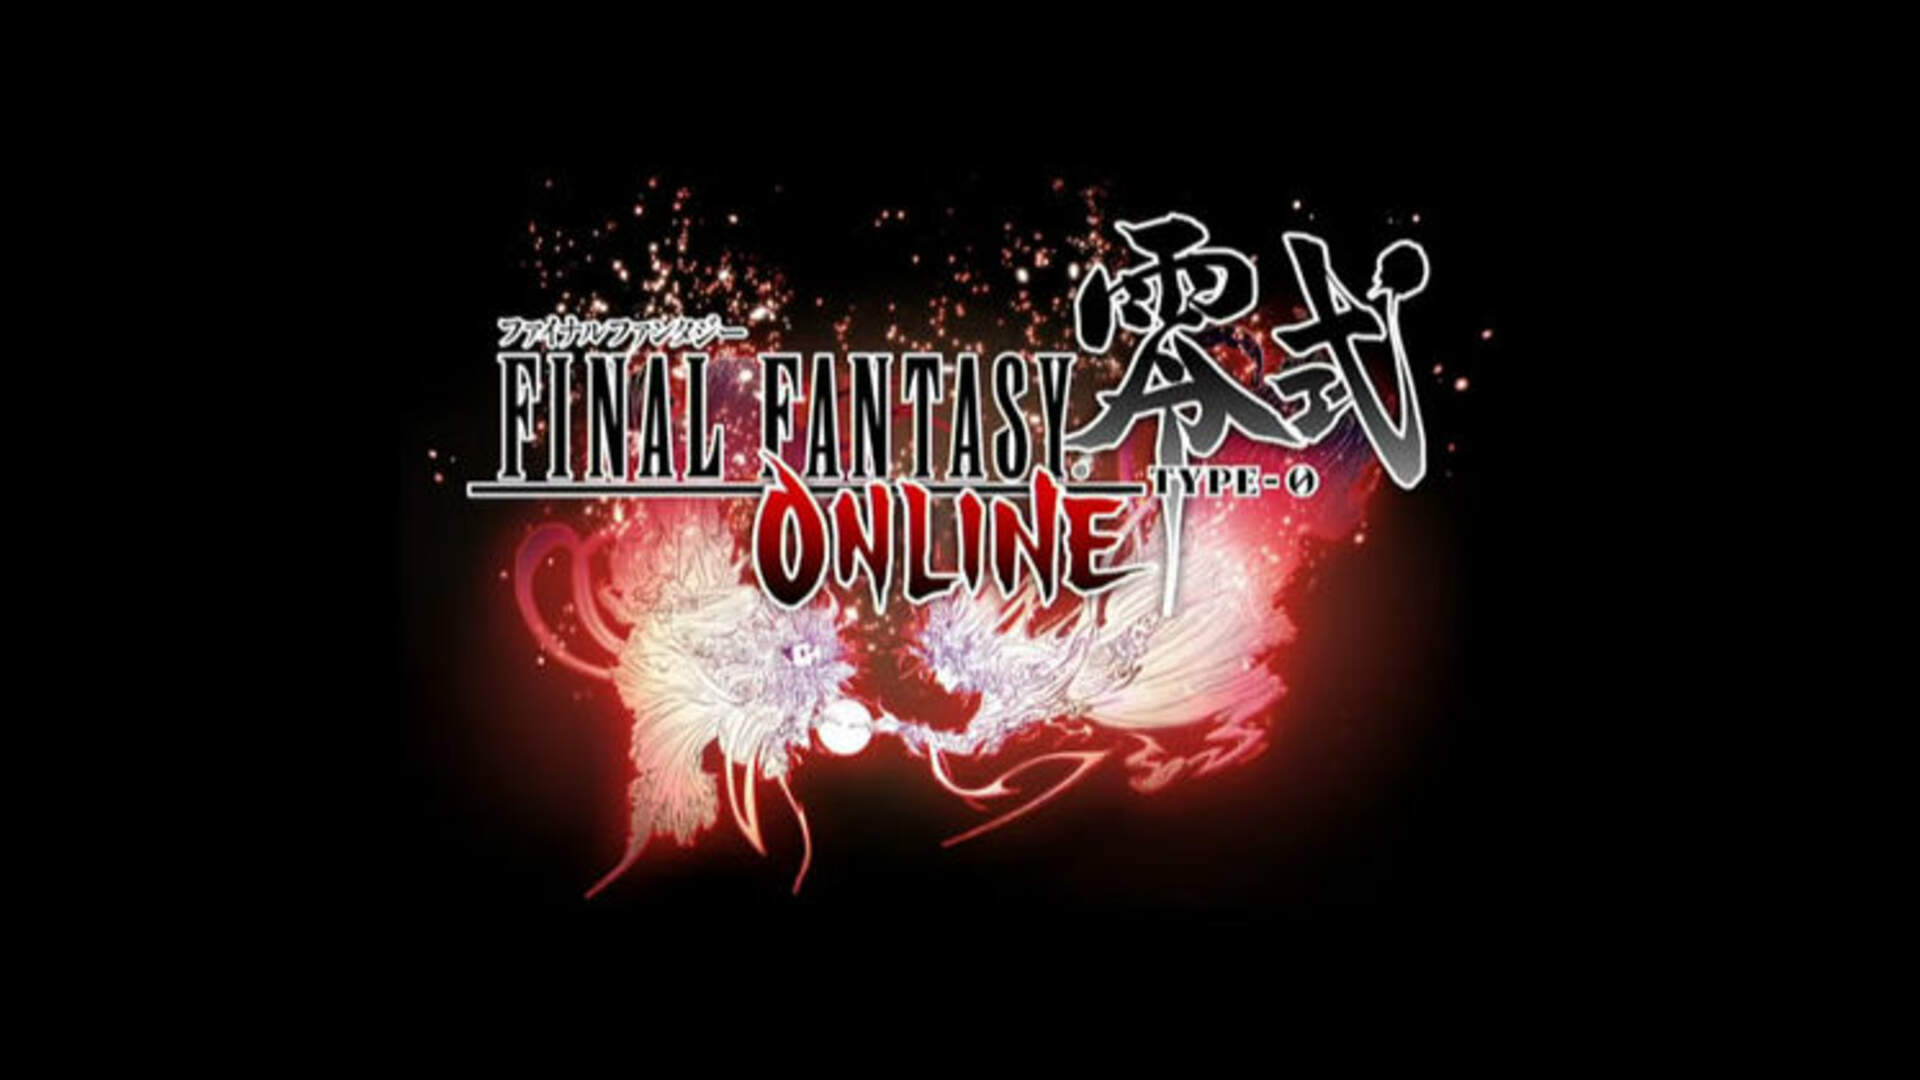 The West Gets Another Mobile Final Fantasy Game With Final Fantasy Type-0 Online